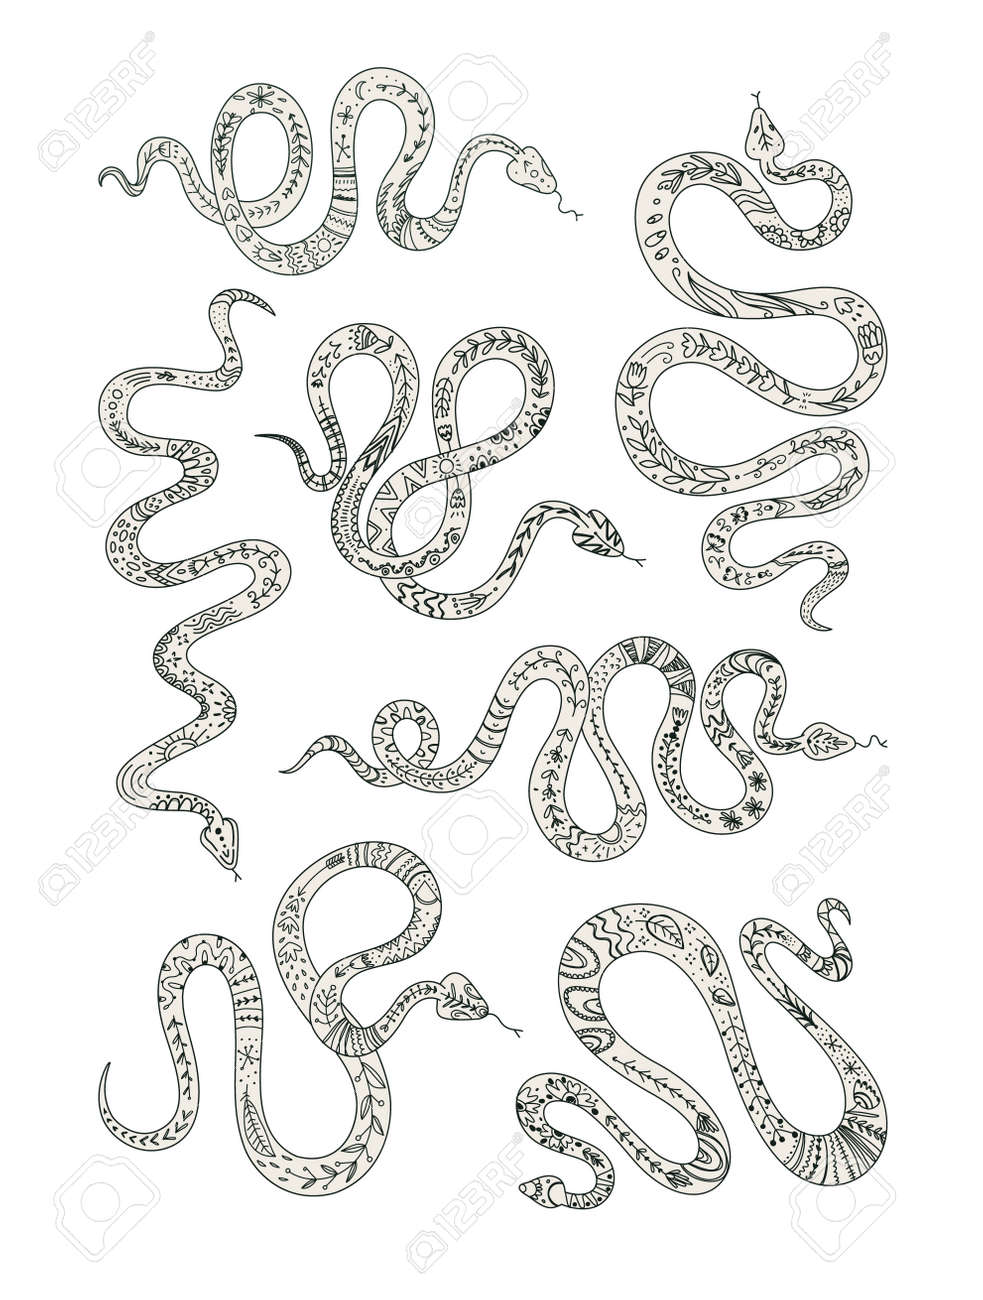 Vector set of snakes totem animal graphic elements for tattoo or sticker black and white design. - 170385236